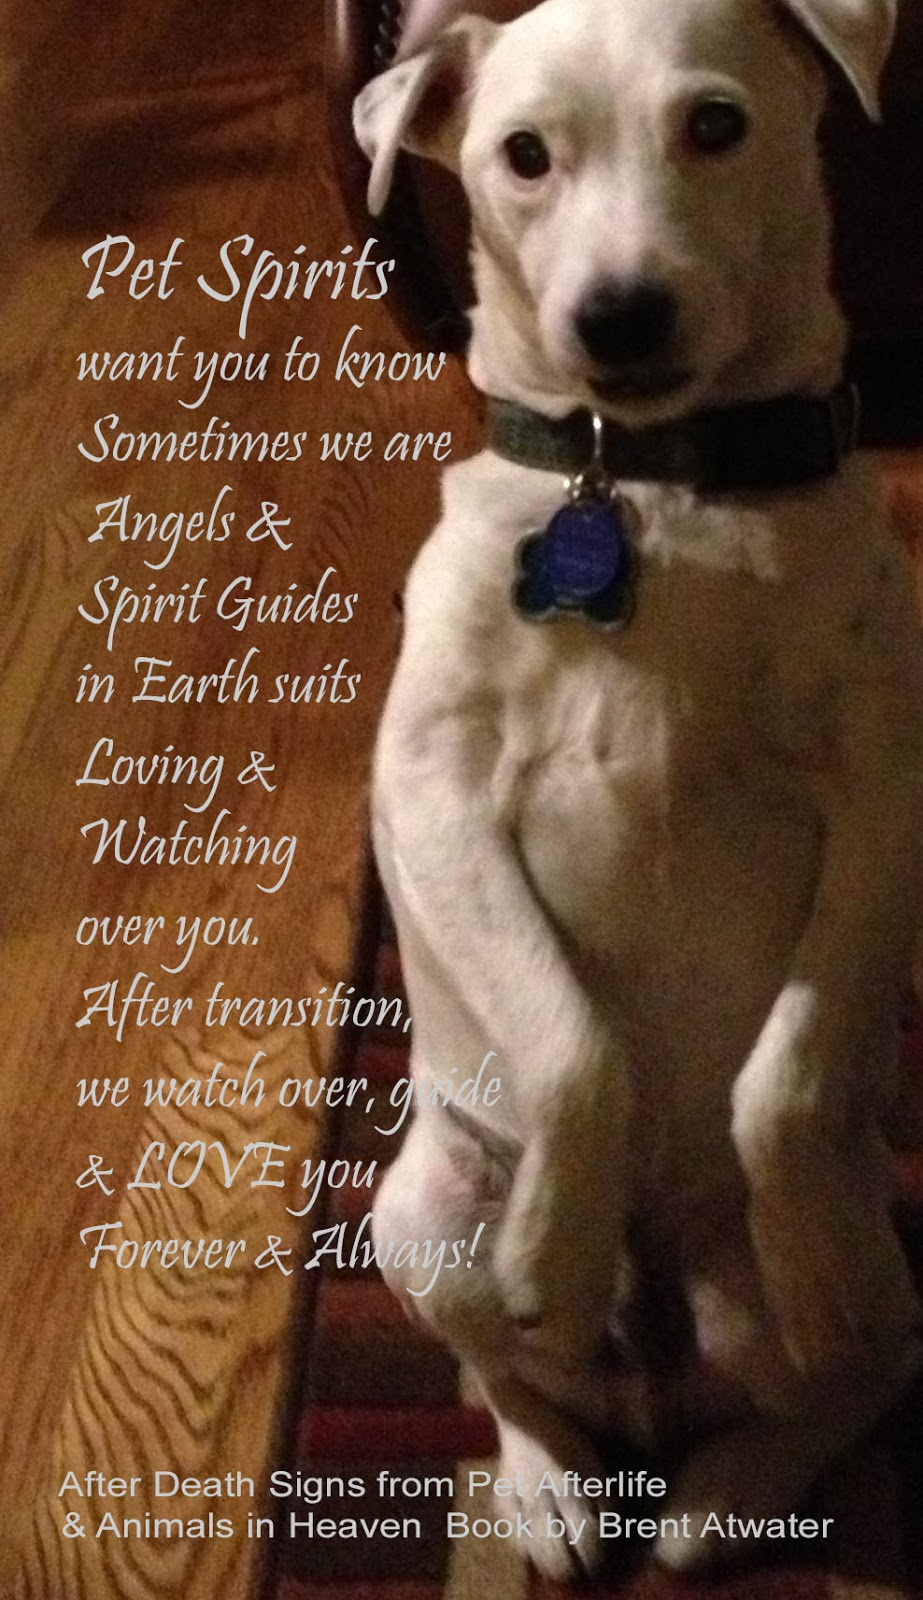 Daily Pet Loss Inspirational Quotes From Pet Spirits 30 Angels And